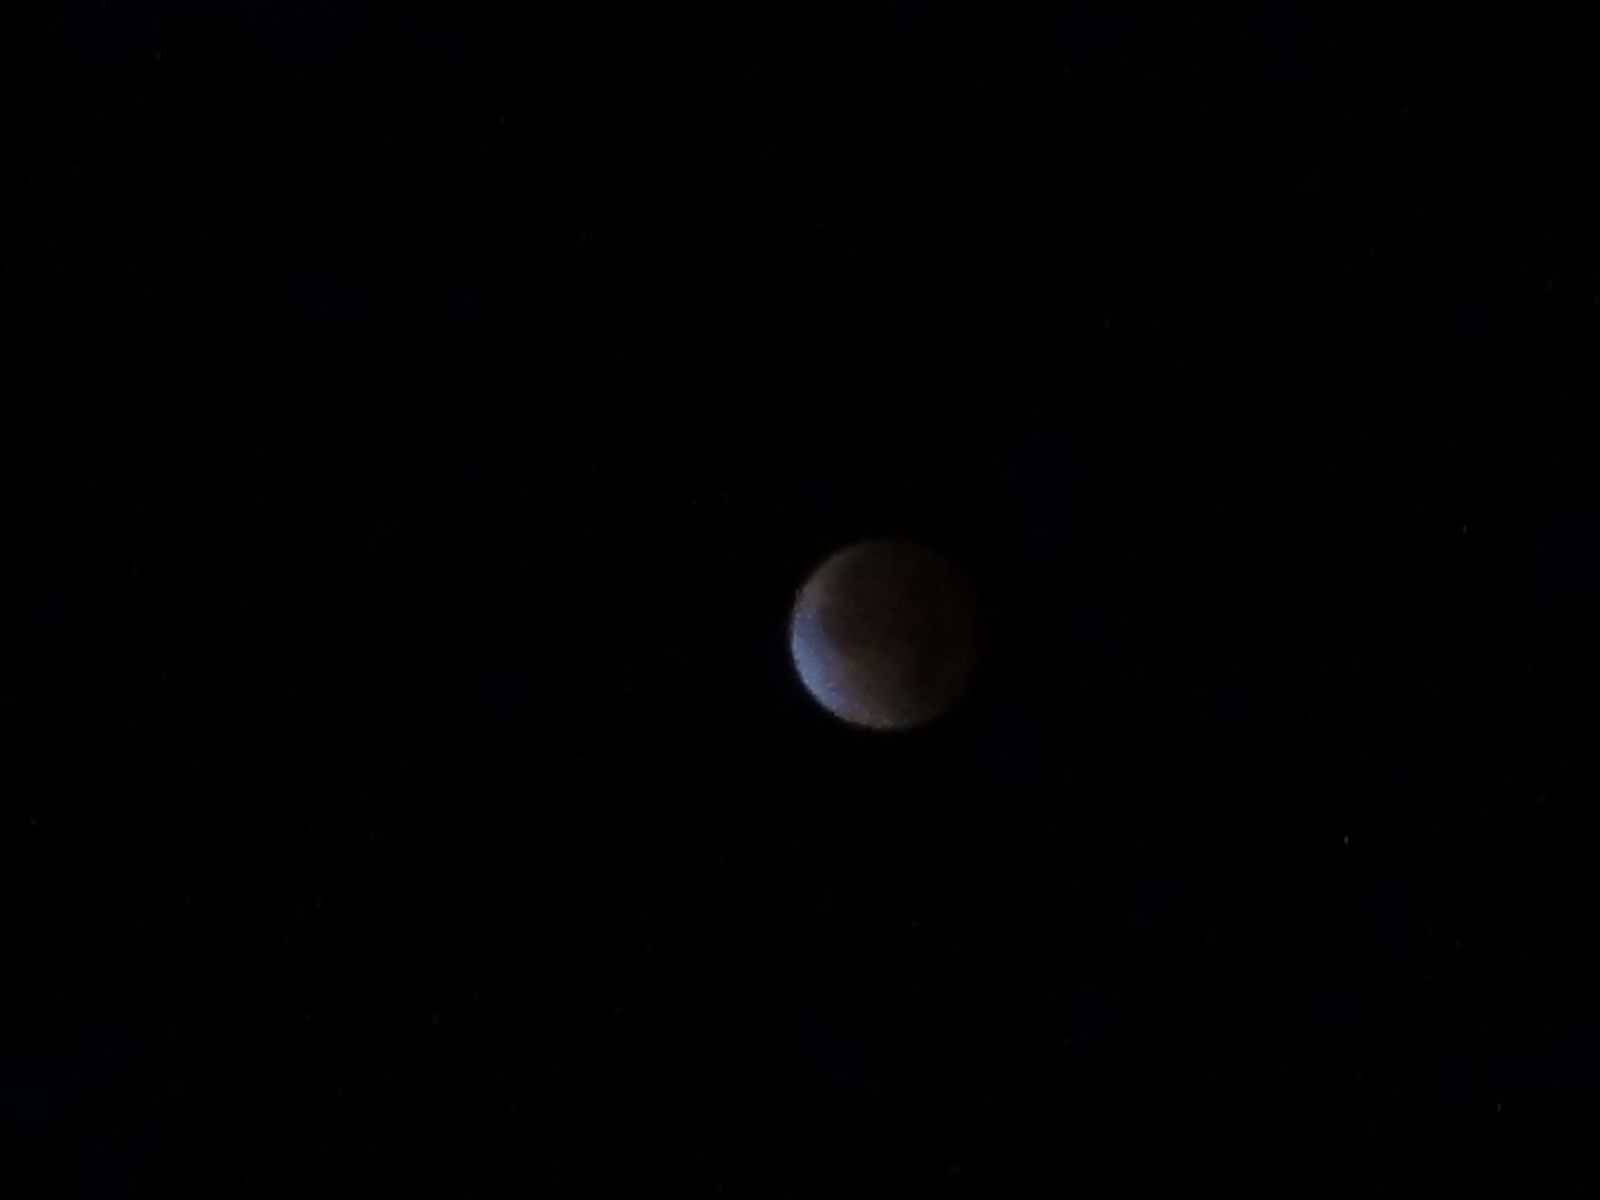 lunar_eclipse_155.jpg